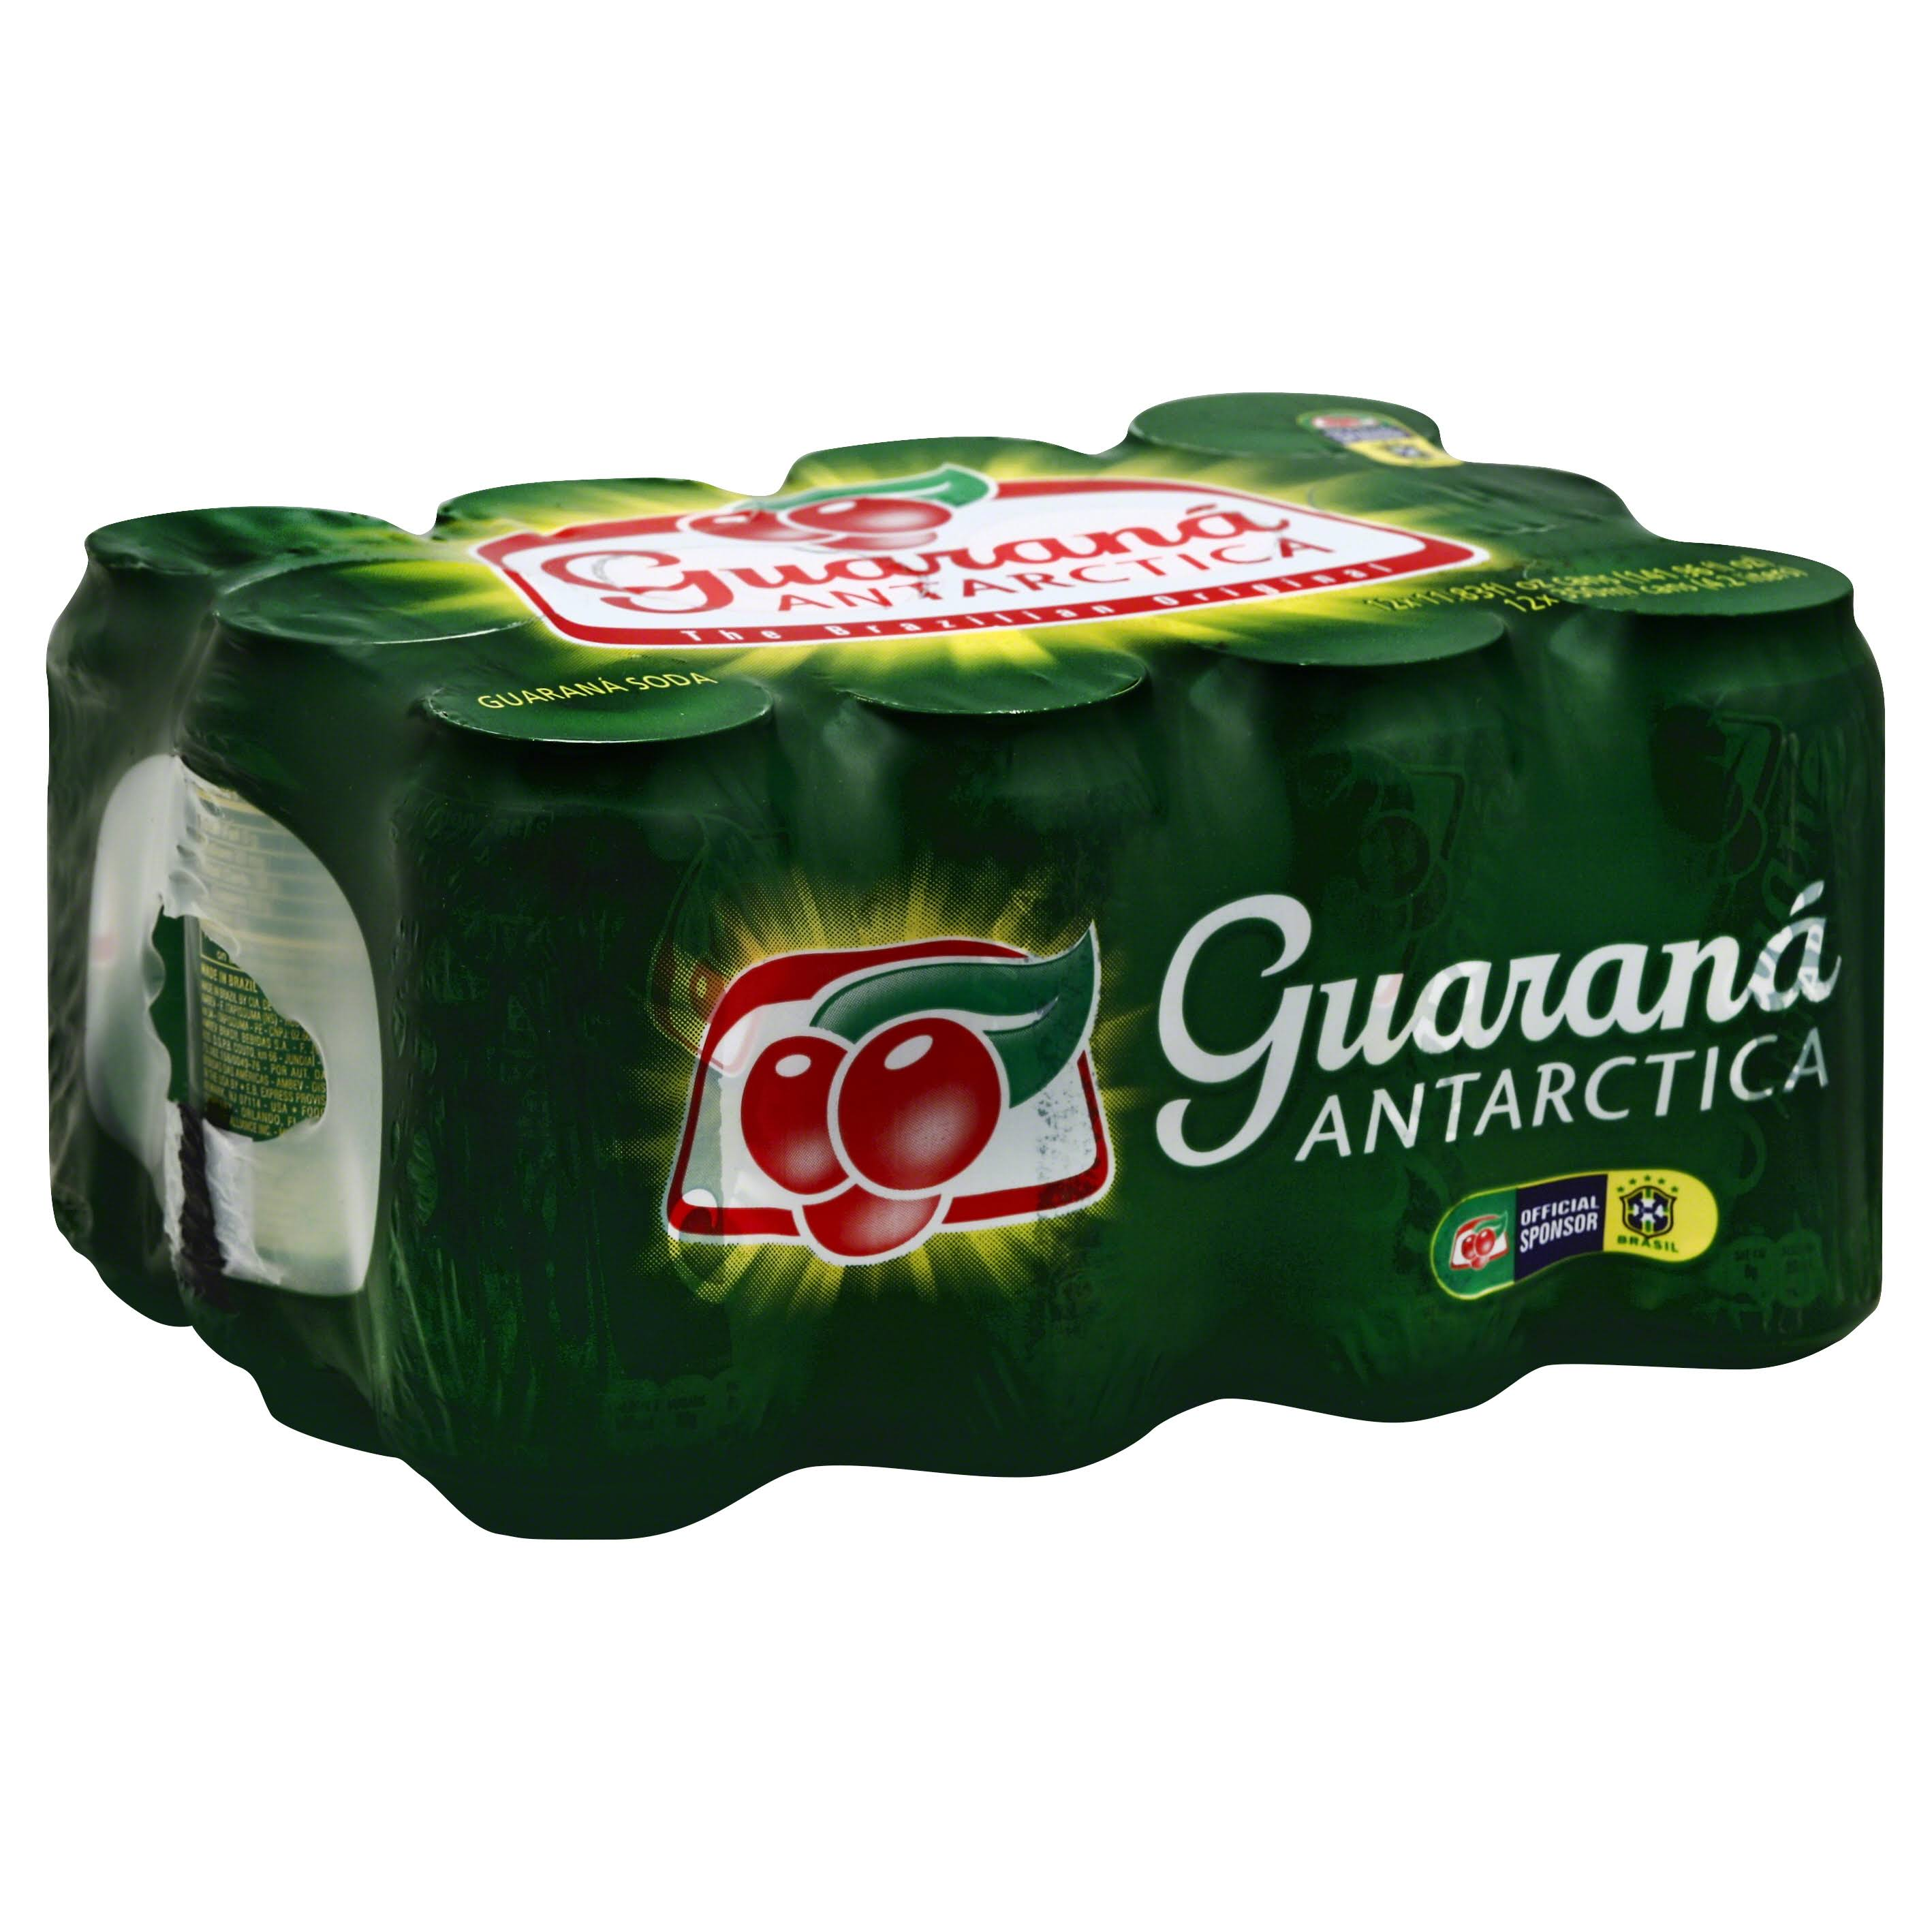 Guarana Antarctica Soda - Original, 12 Pack, 350ml